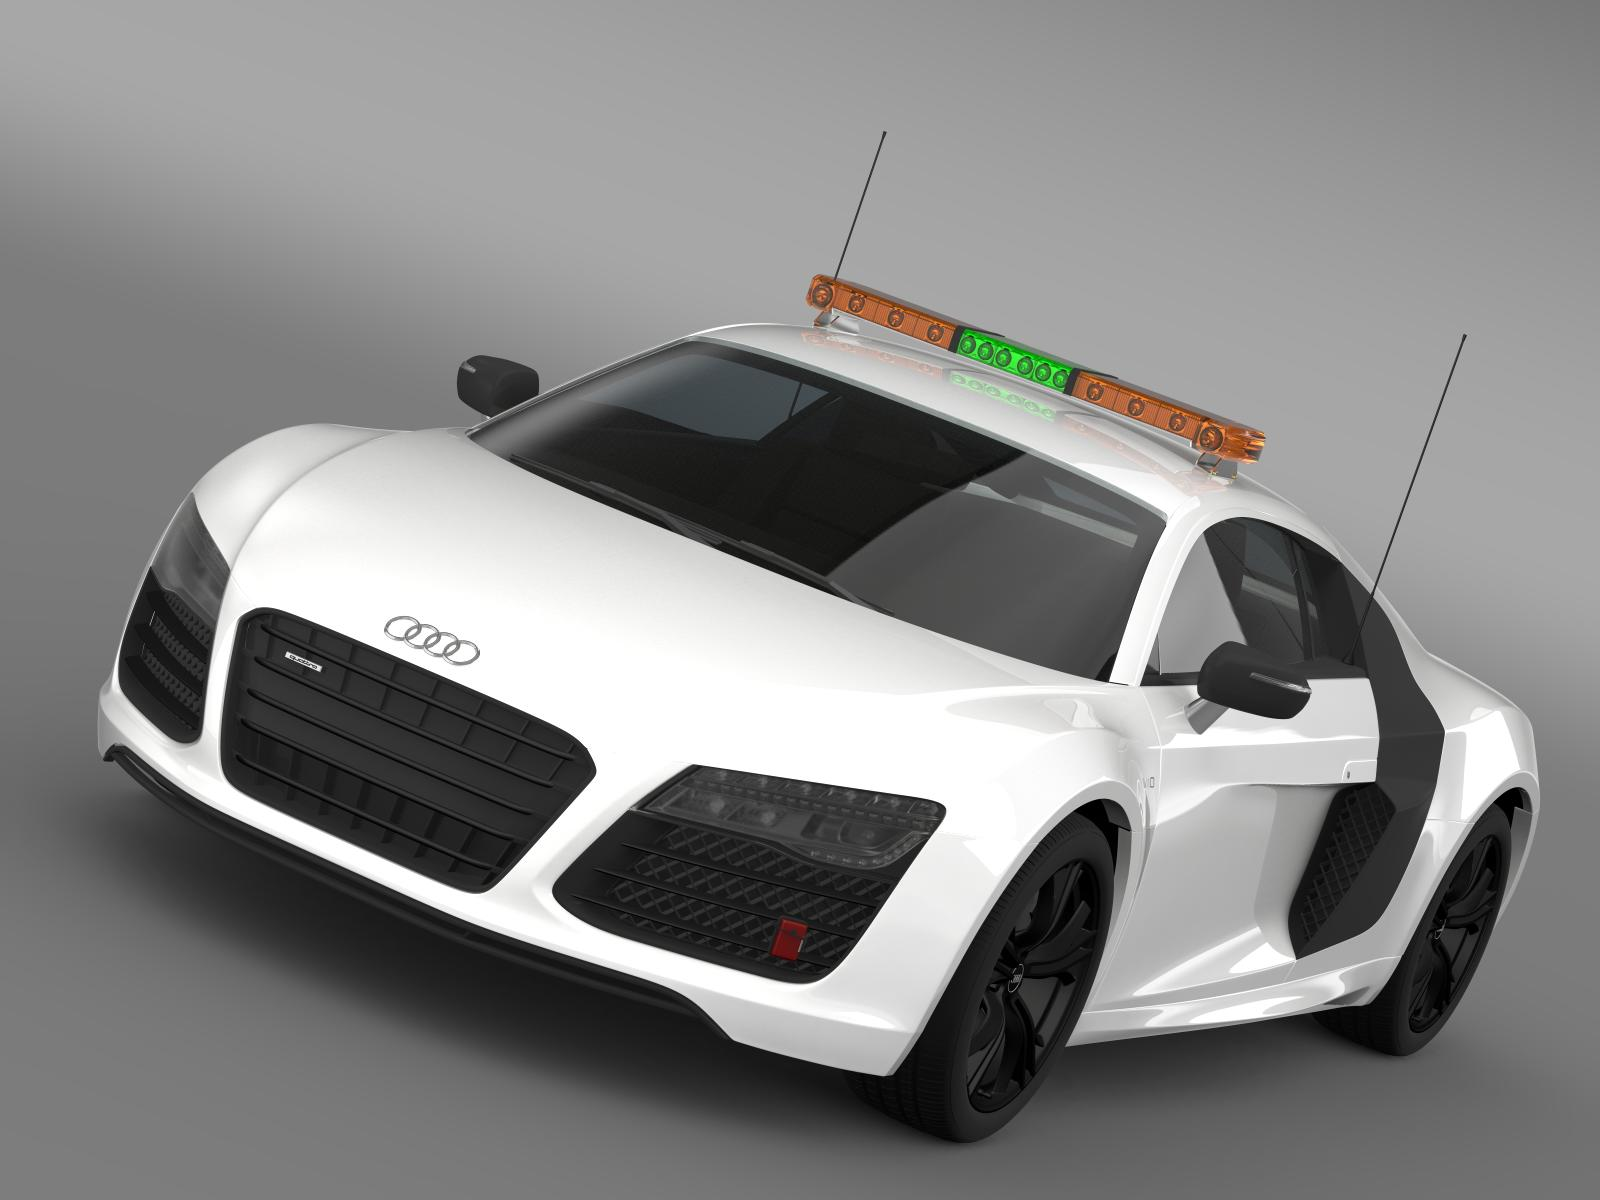 Audi R Vplus Safety Car D Model Vehicles D Models Audi Ds - Audi car 3d image